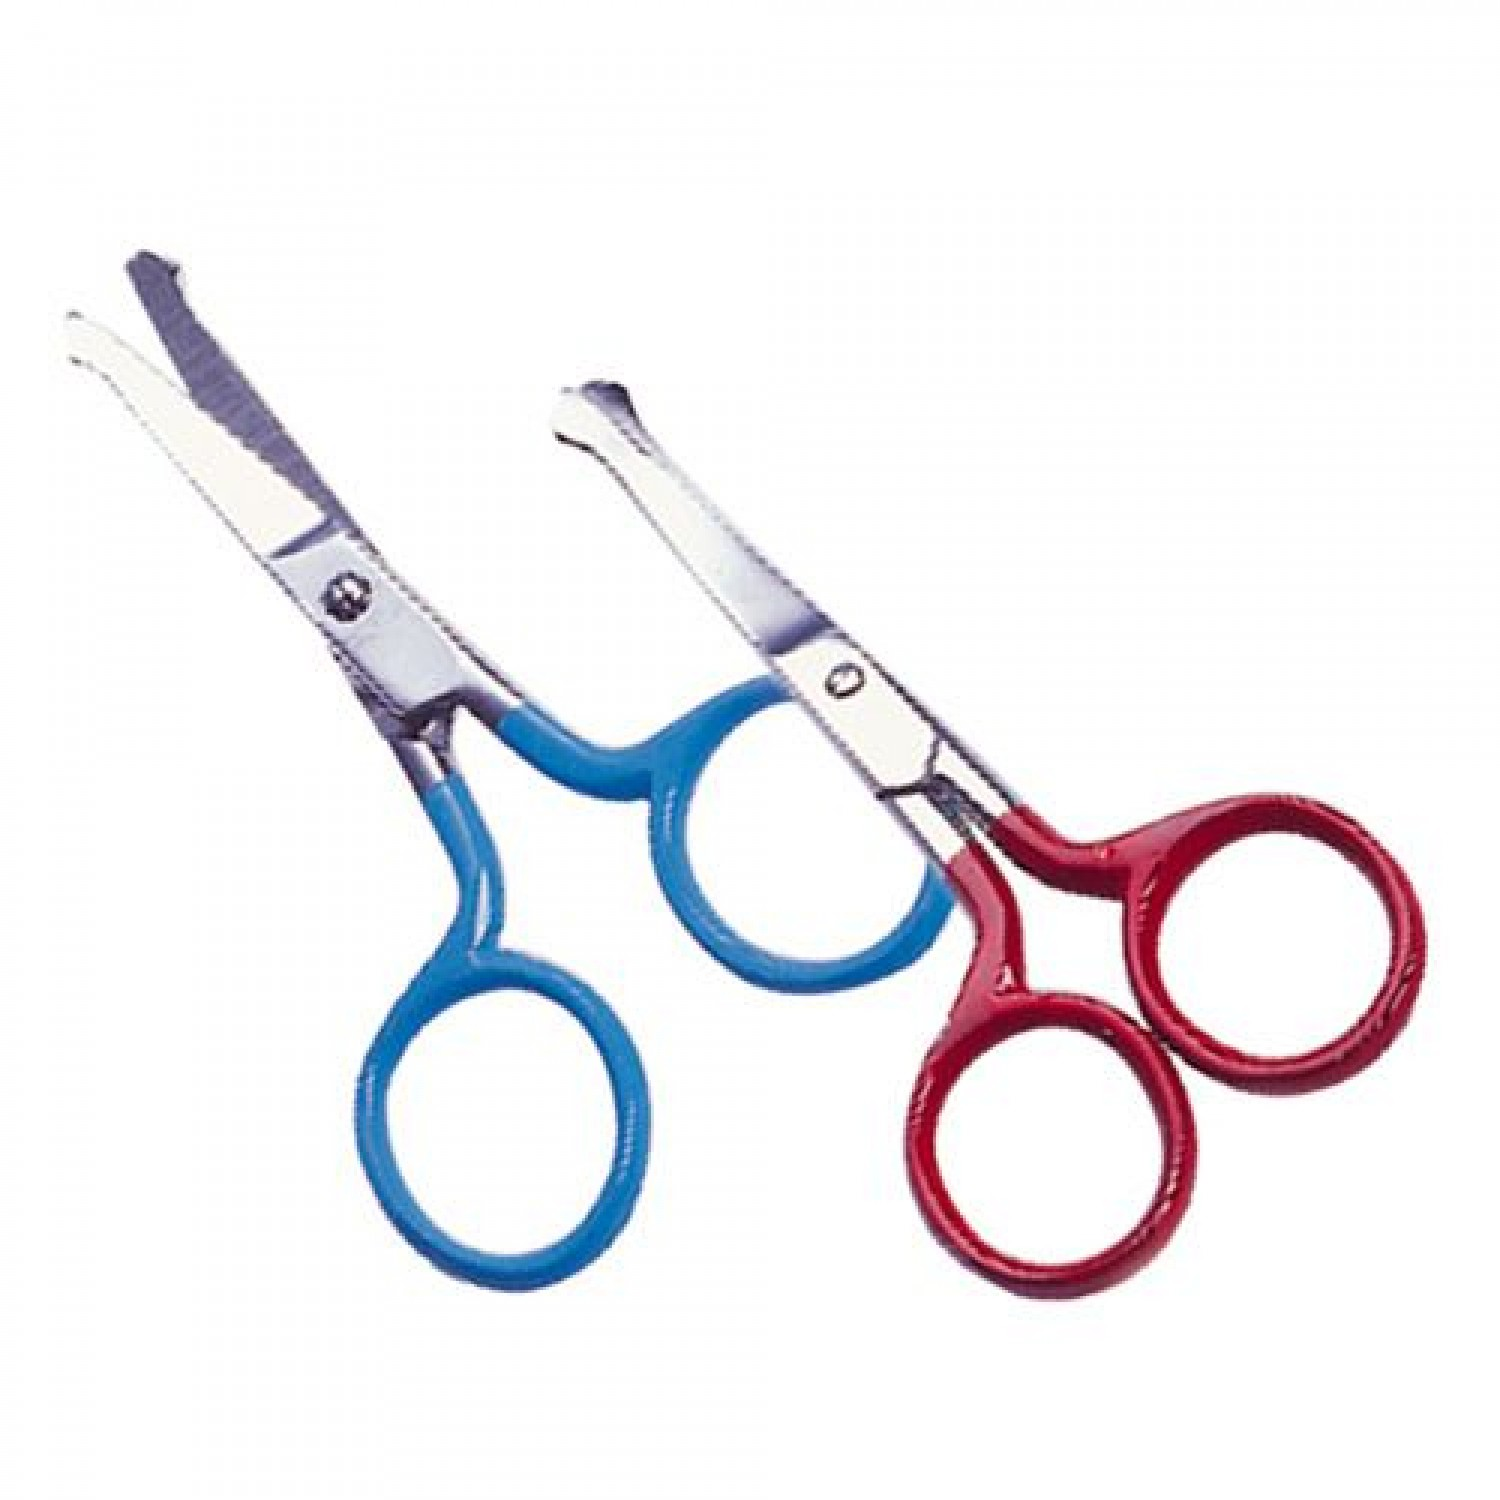 Baby Nova scissors of stainless steel & colourful handle